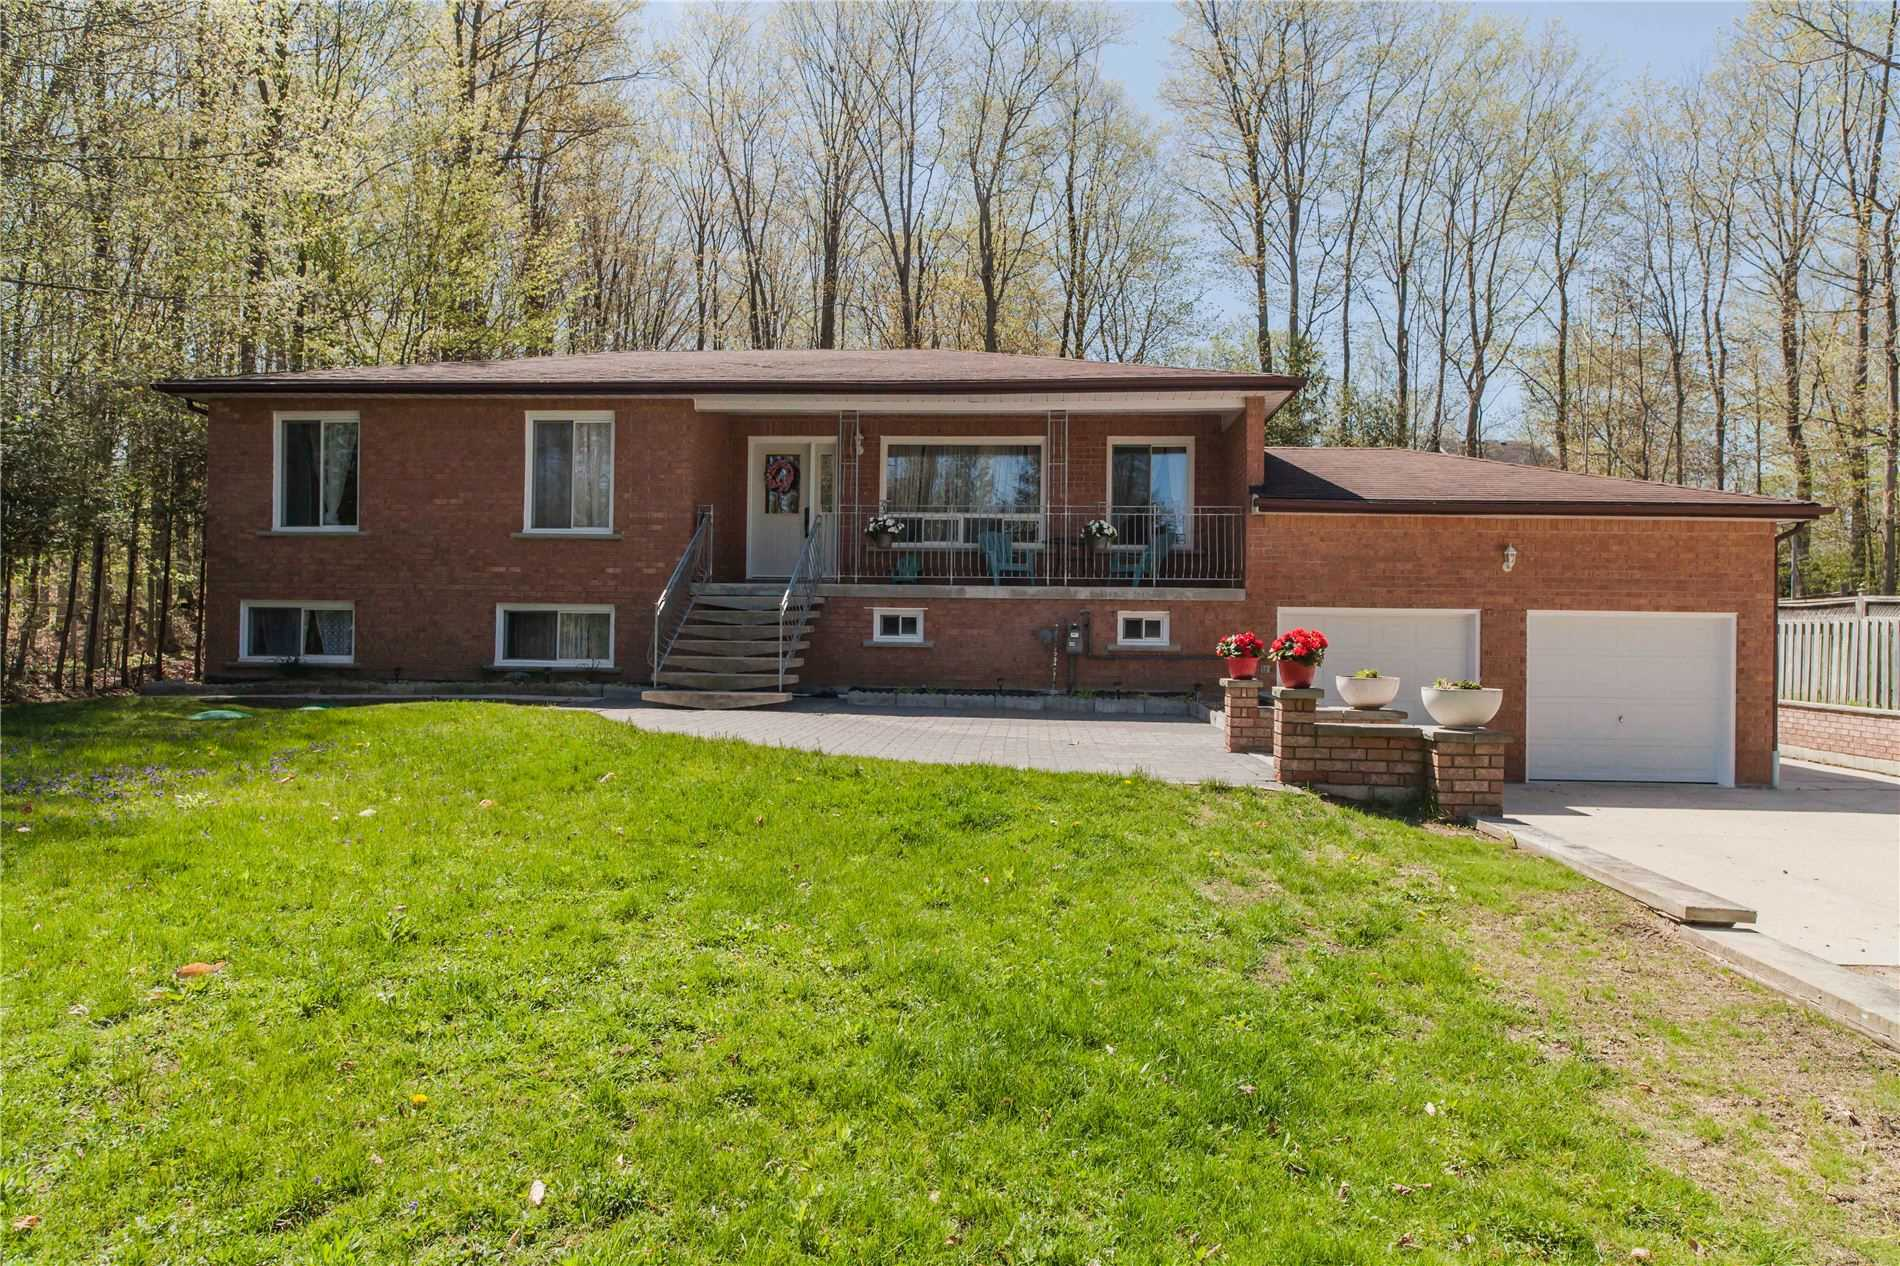 Fabulous Sauble Beach Home! Wonderfully Renovated, So Much To Offer W/ Added Income Potential. Solid Brick, Raised Bungalow Has Tons Of Opportunity W/2 Separate Living Spaces. Boasts 3+2 Lg Bdrms, 2+1 4Pc Renovated Baths (W/ Mstr Ensuite), 2 Kitchens + 2 Laundry Rms.  Live On One Level / Earn Income On The 2nd! Attached Dbl Garage. Large, Private, Treed Lot In Sought After Area, Close Proximity To The Beach, Silver Lake And Bruce Power.